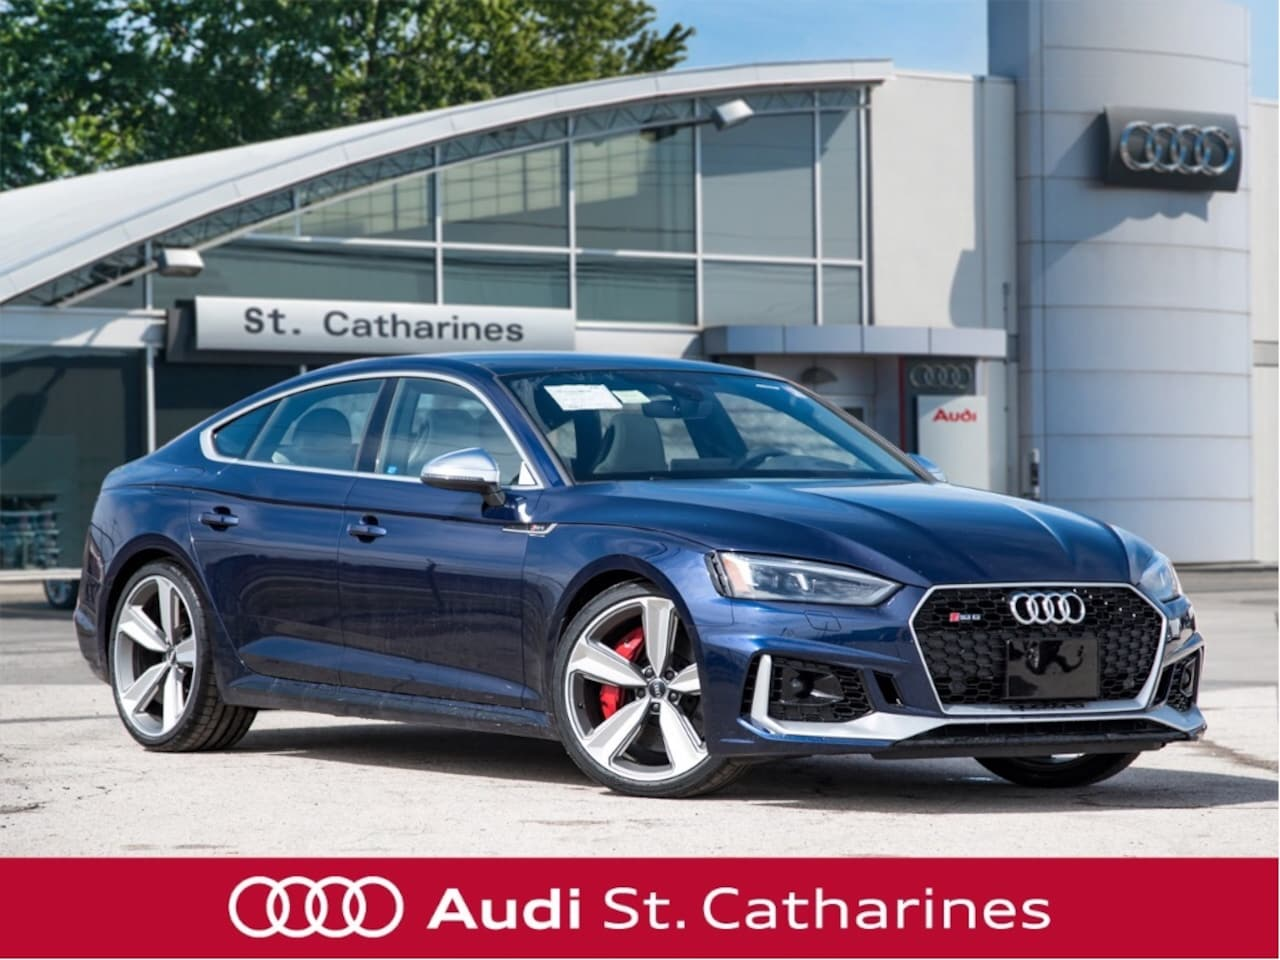 2019 Audi RS 5 Sportback 2.9T Quattro 8sp Tiptronic #Owneverysecond Sportback